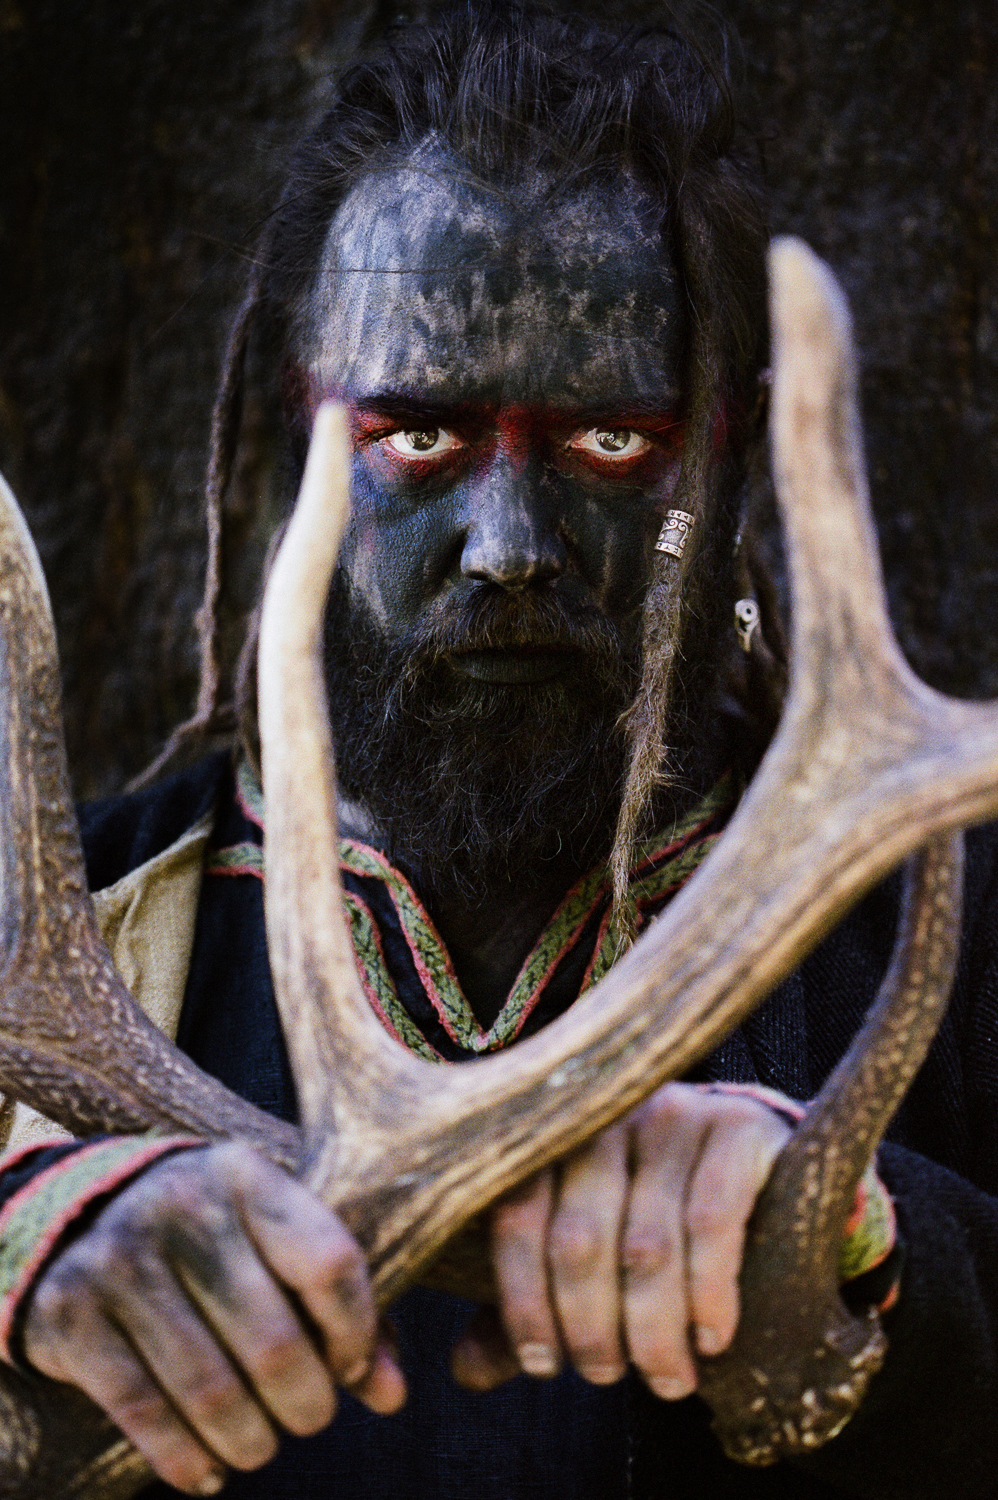 Heilung band Christopher Juul